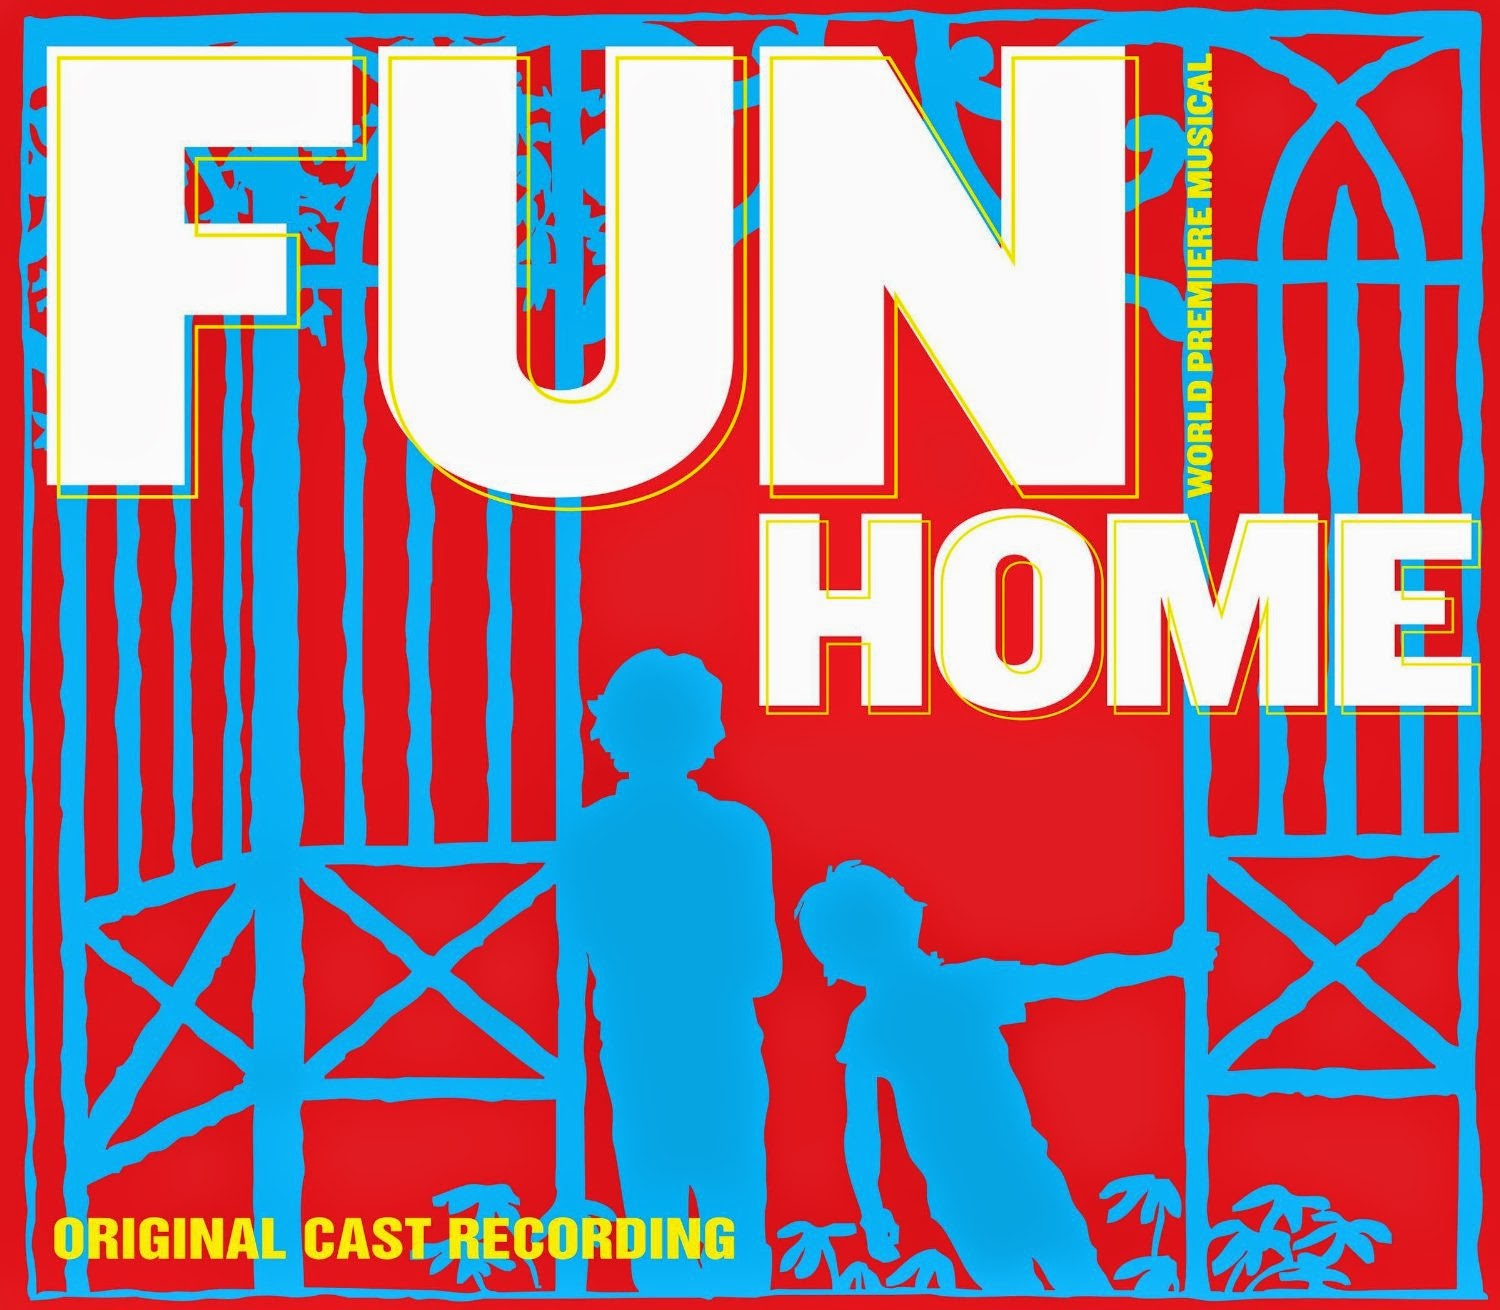 CD REVIEW: Fun Home